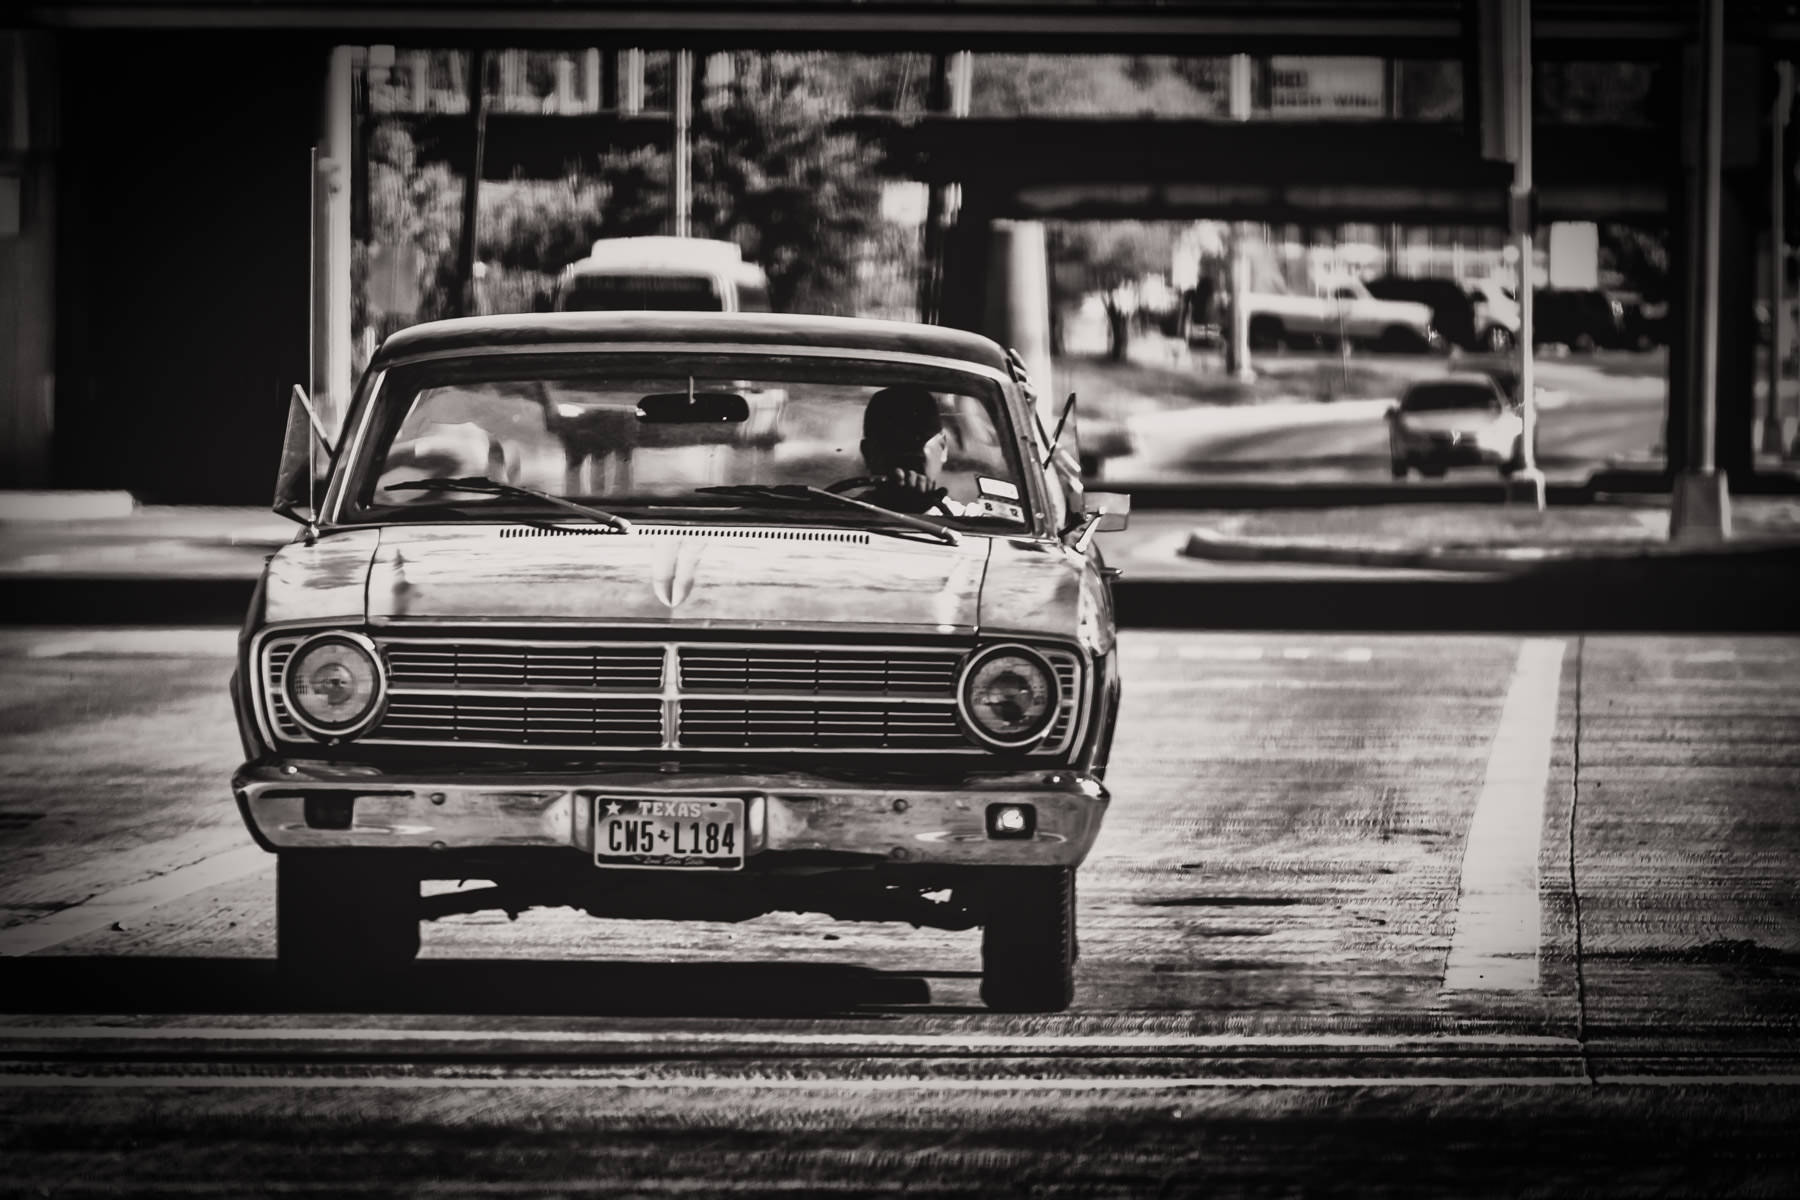 Driving a classic car in Dallas at I-35 and Inwood.